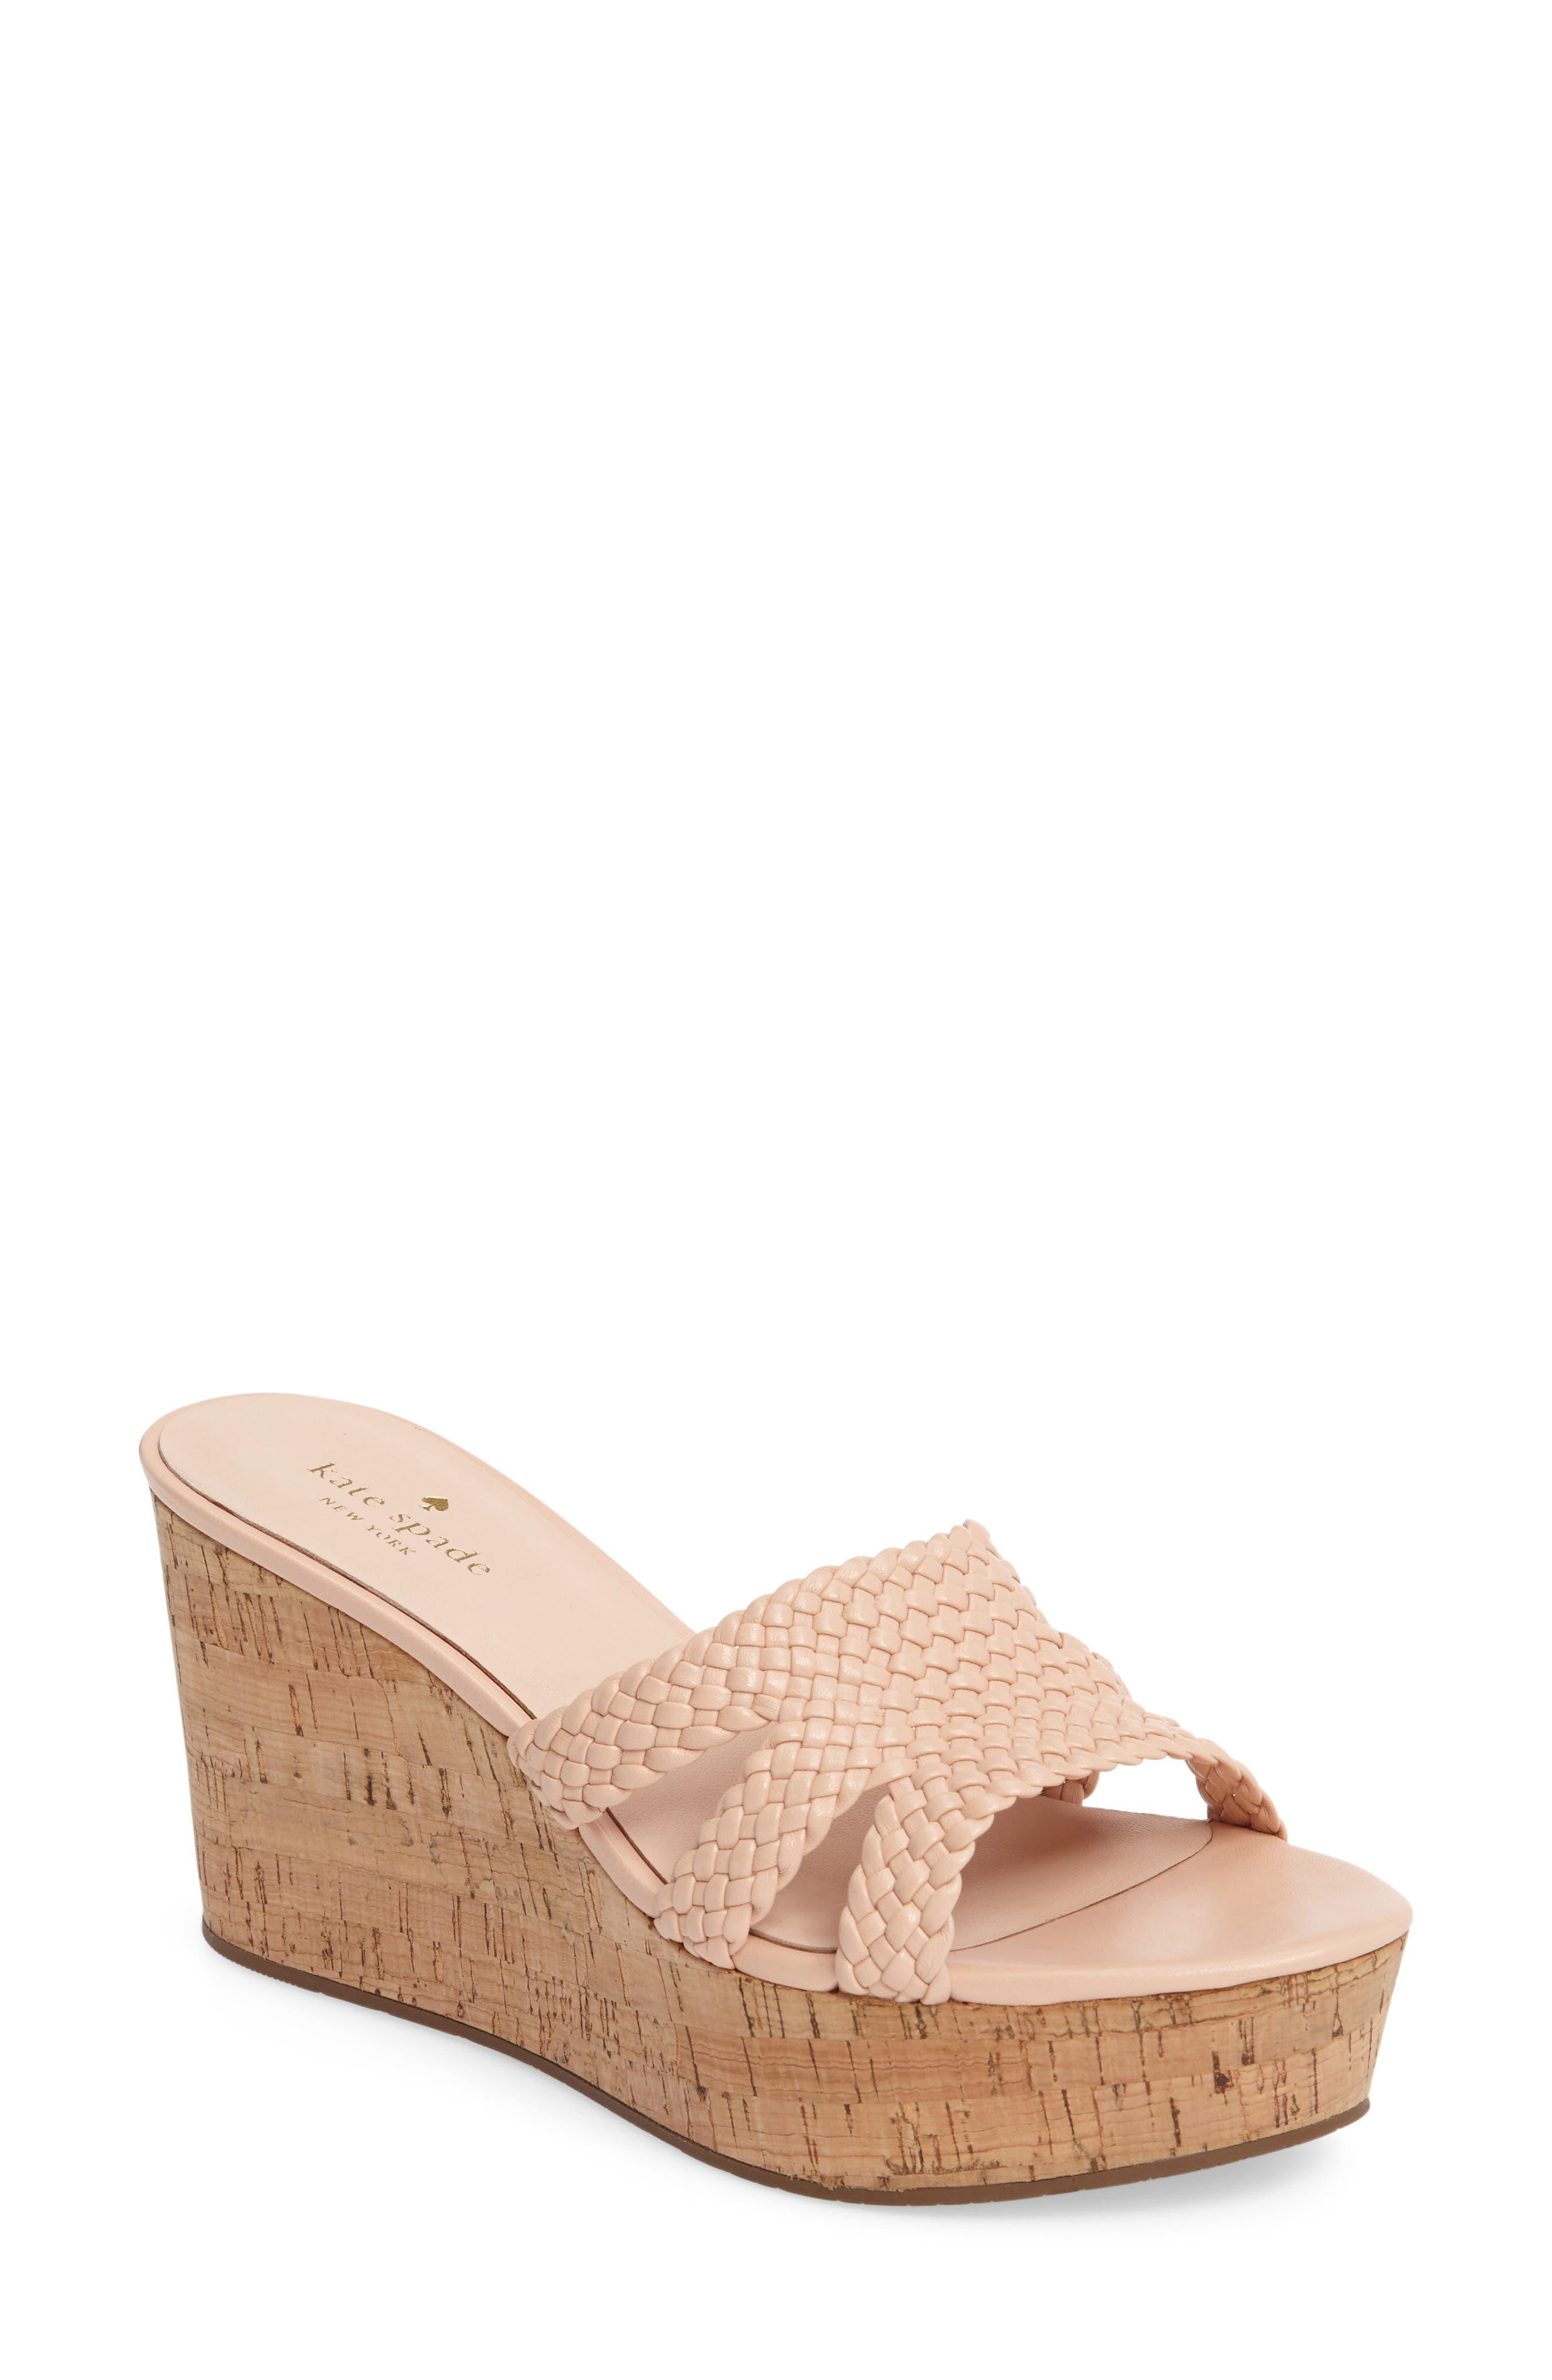 tarvela wedge sandal,                         Main,                         color, 661